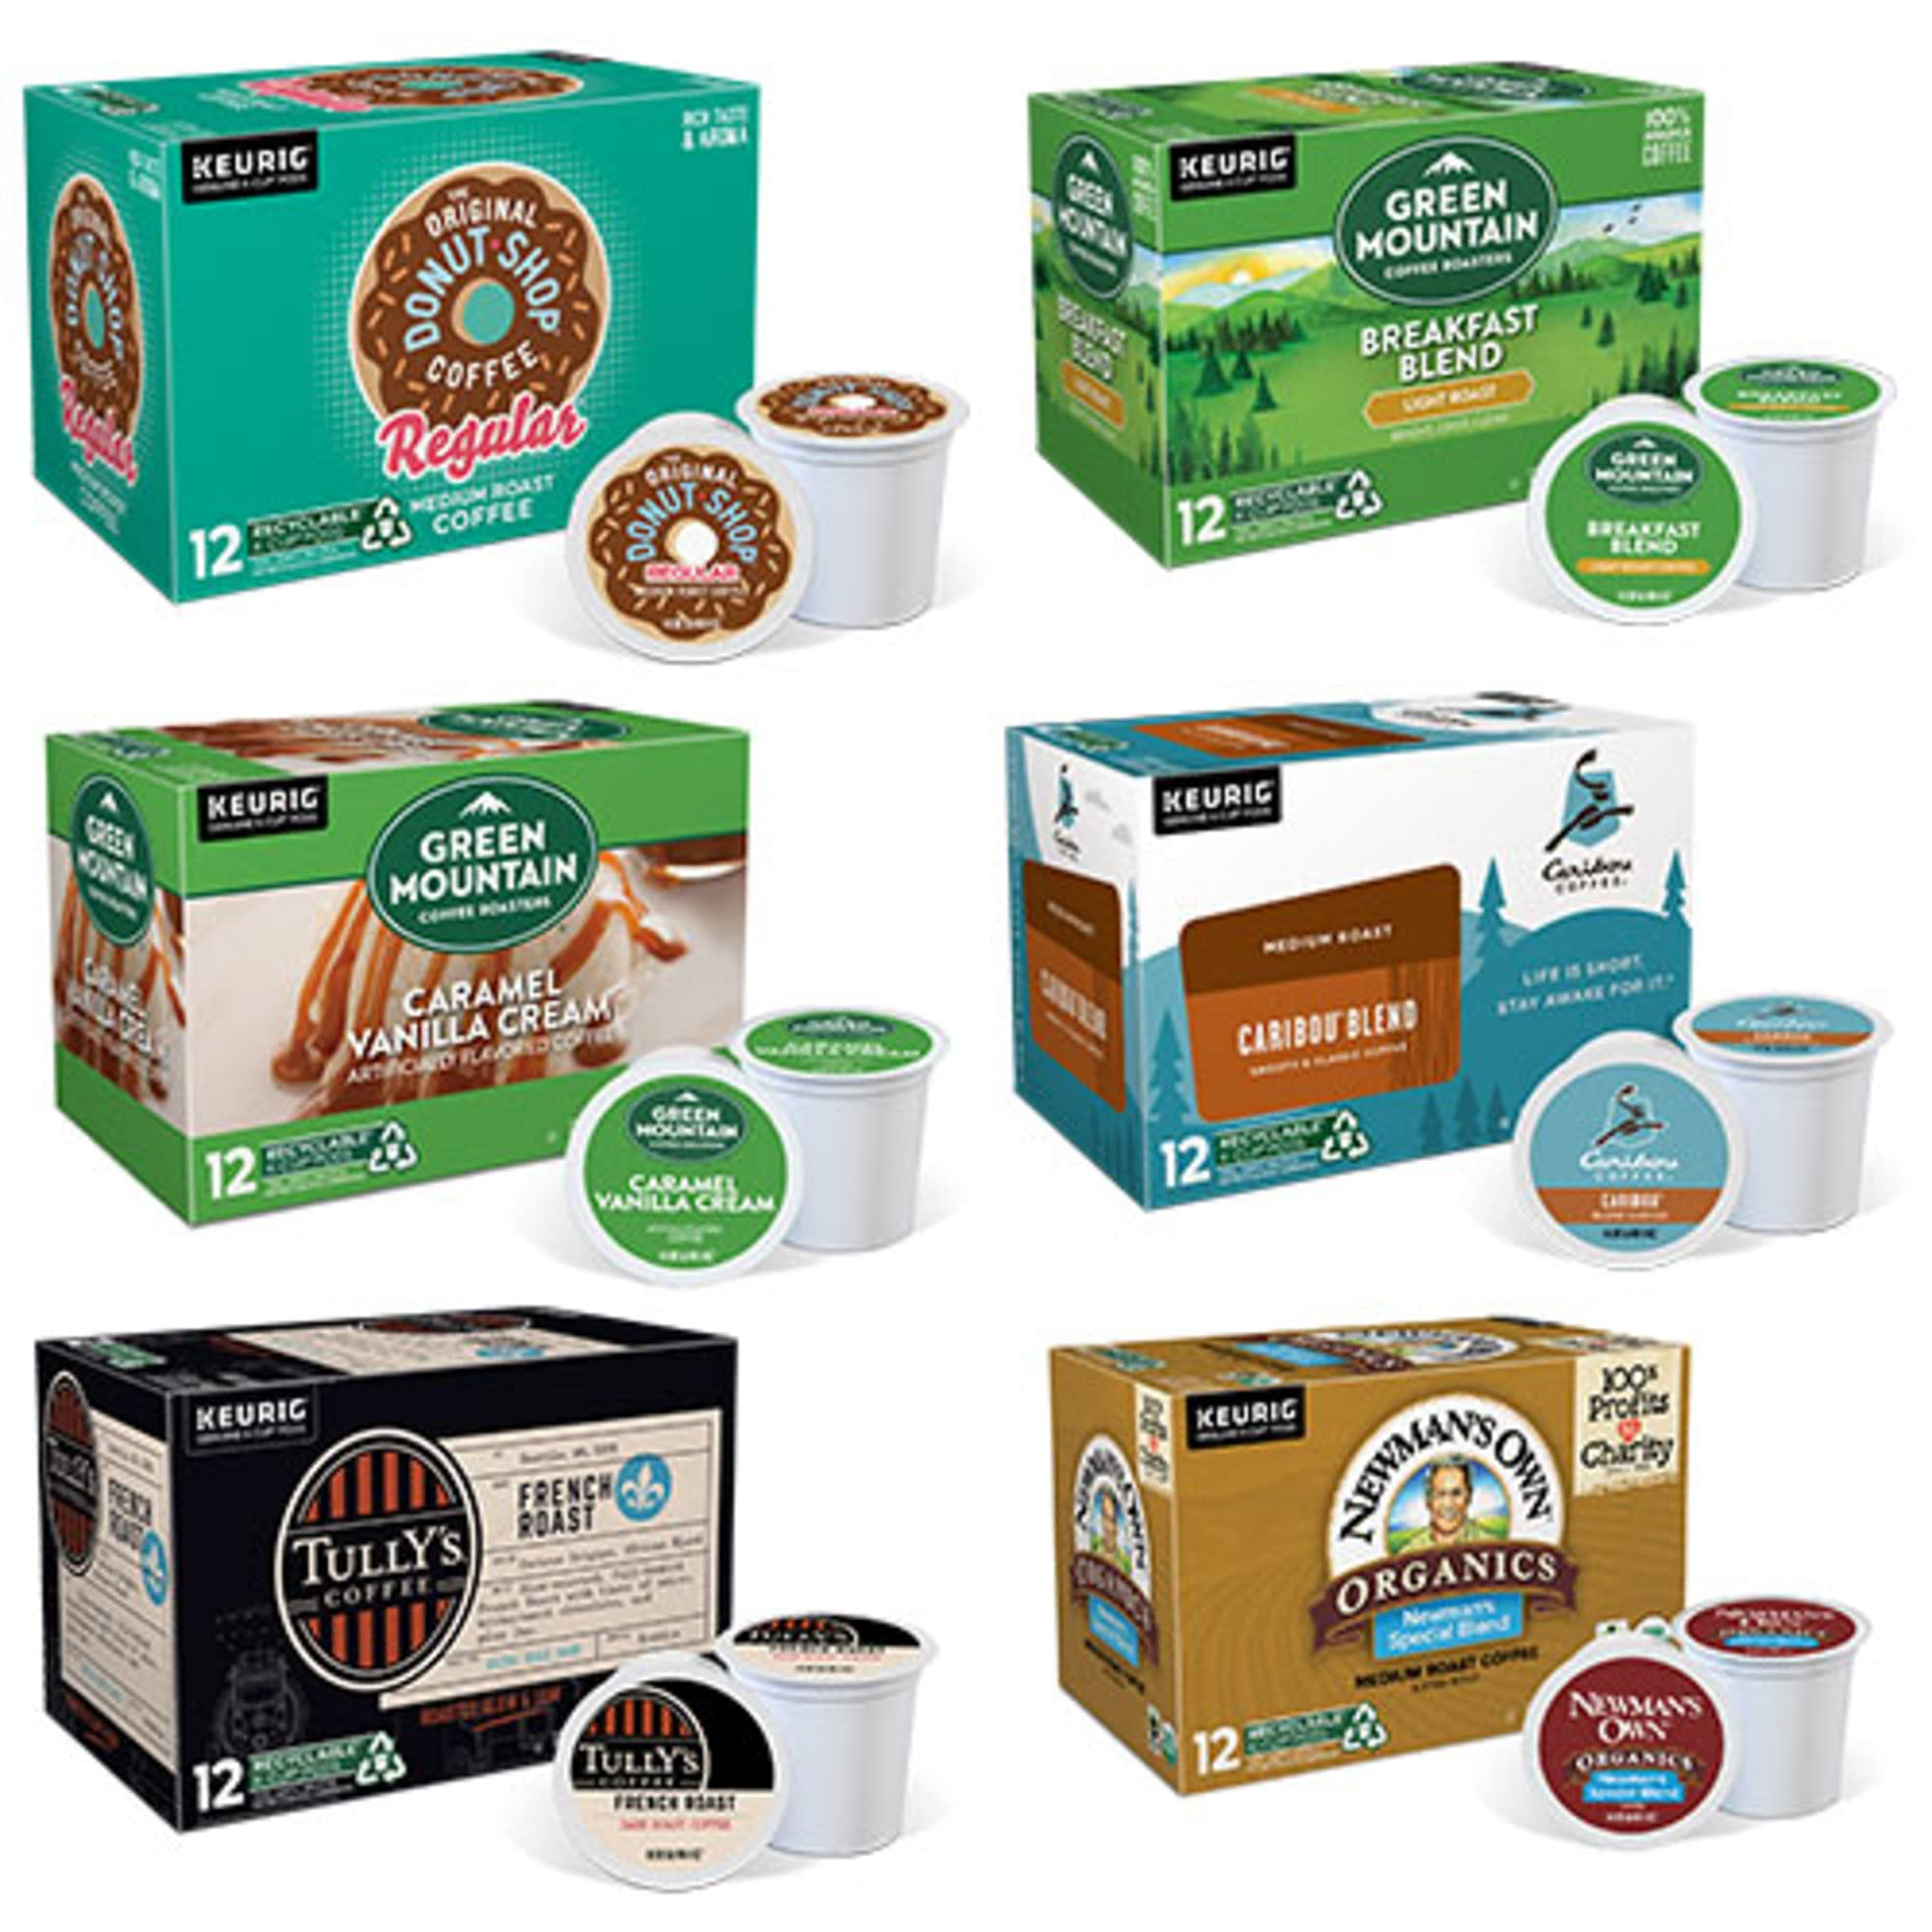 Keurig K-Cup Pod Variety Pack, Single-Serve Coffee K-Cup Pods, Amazon Exclusive, 72 Count